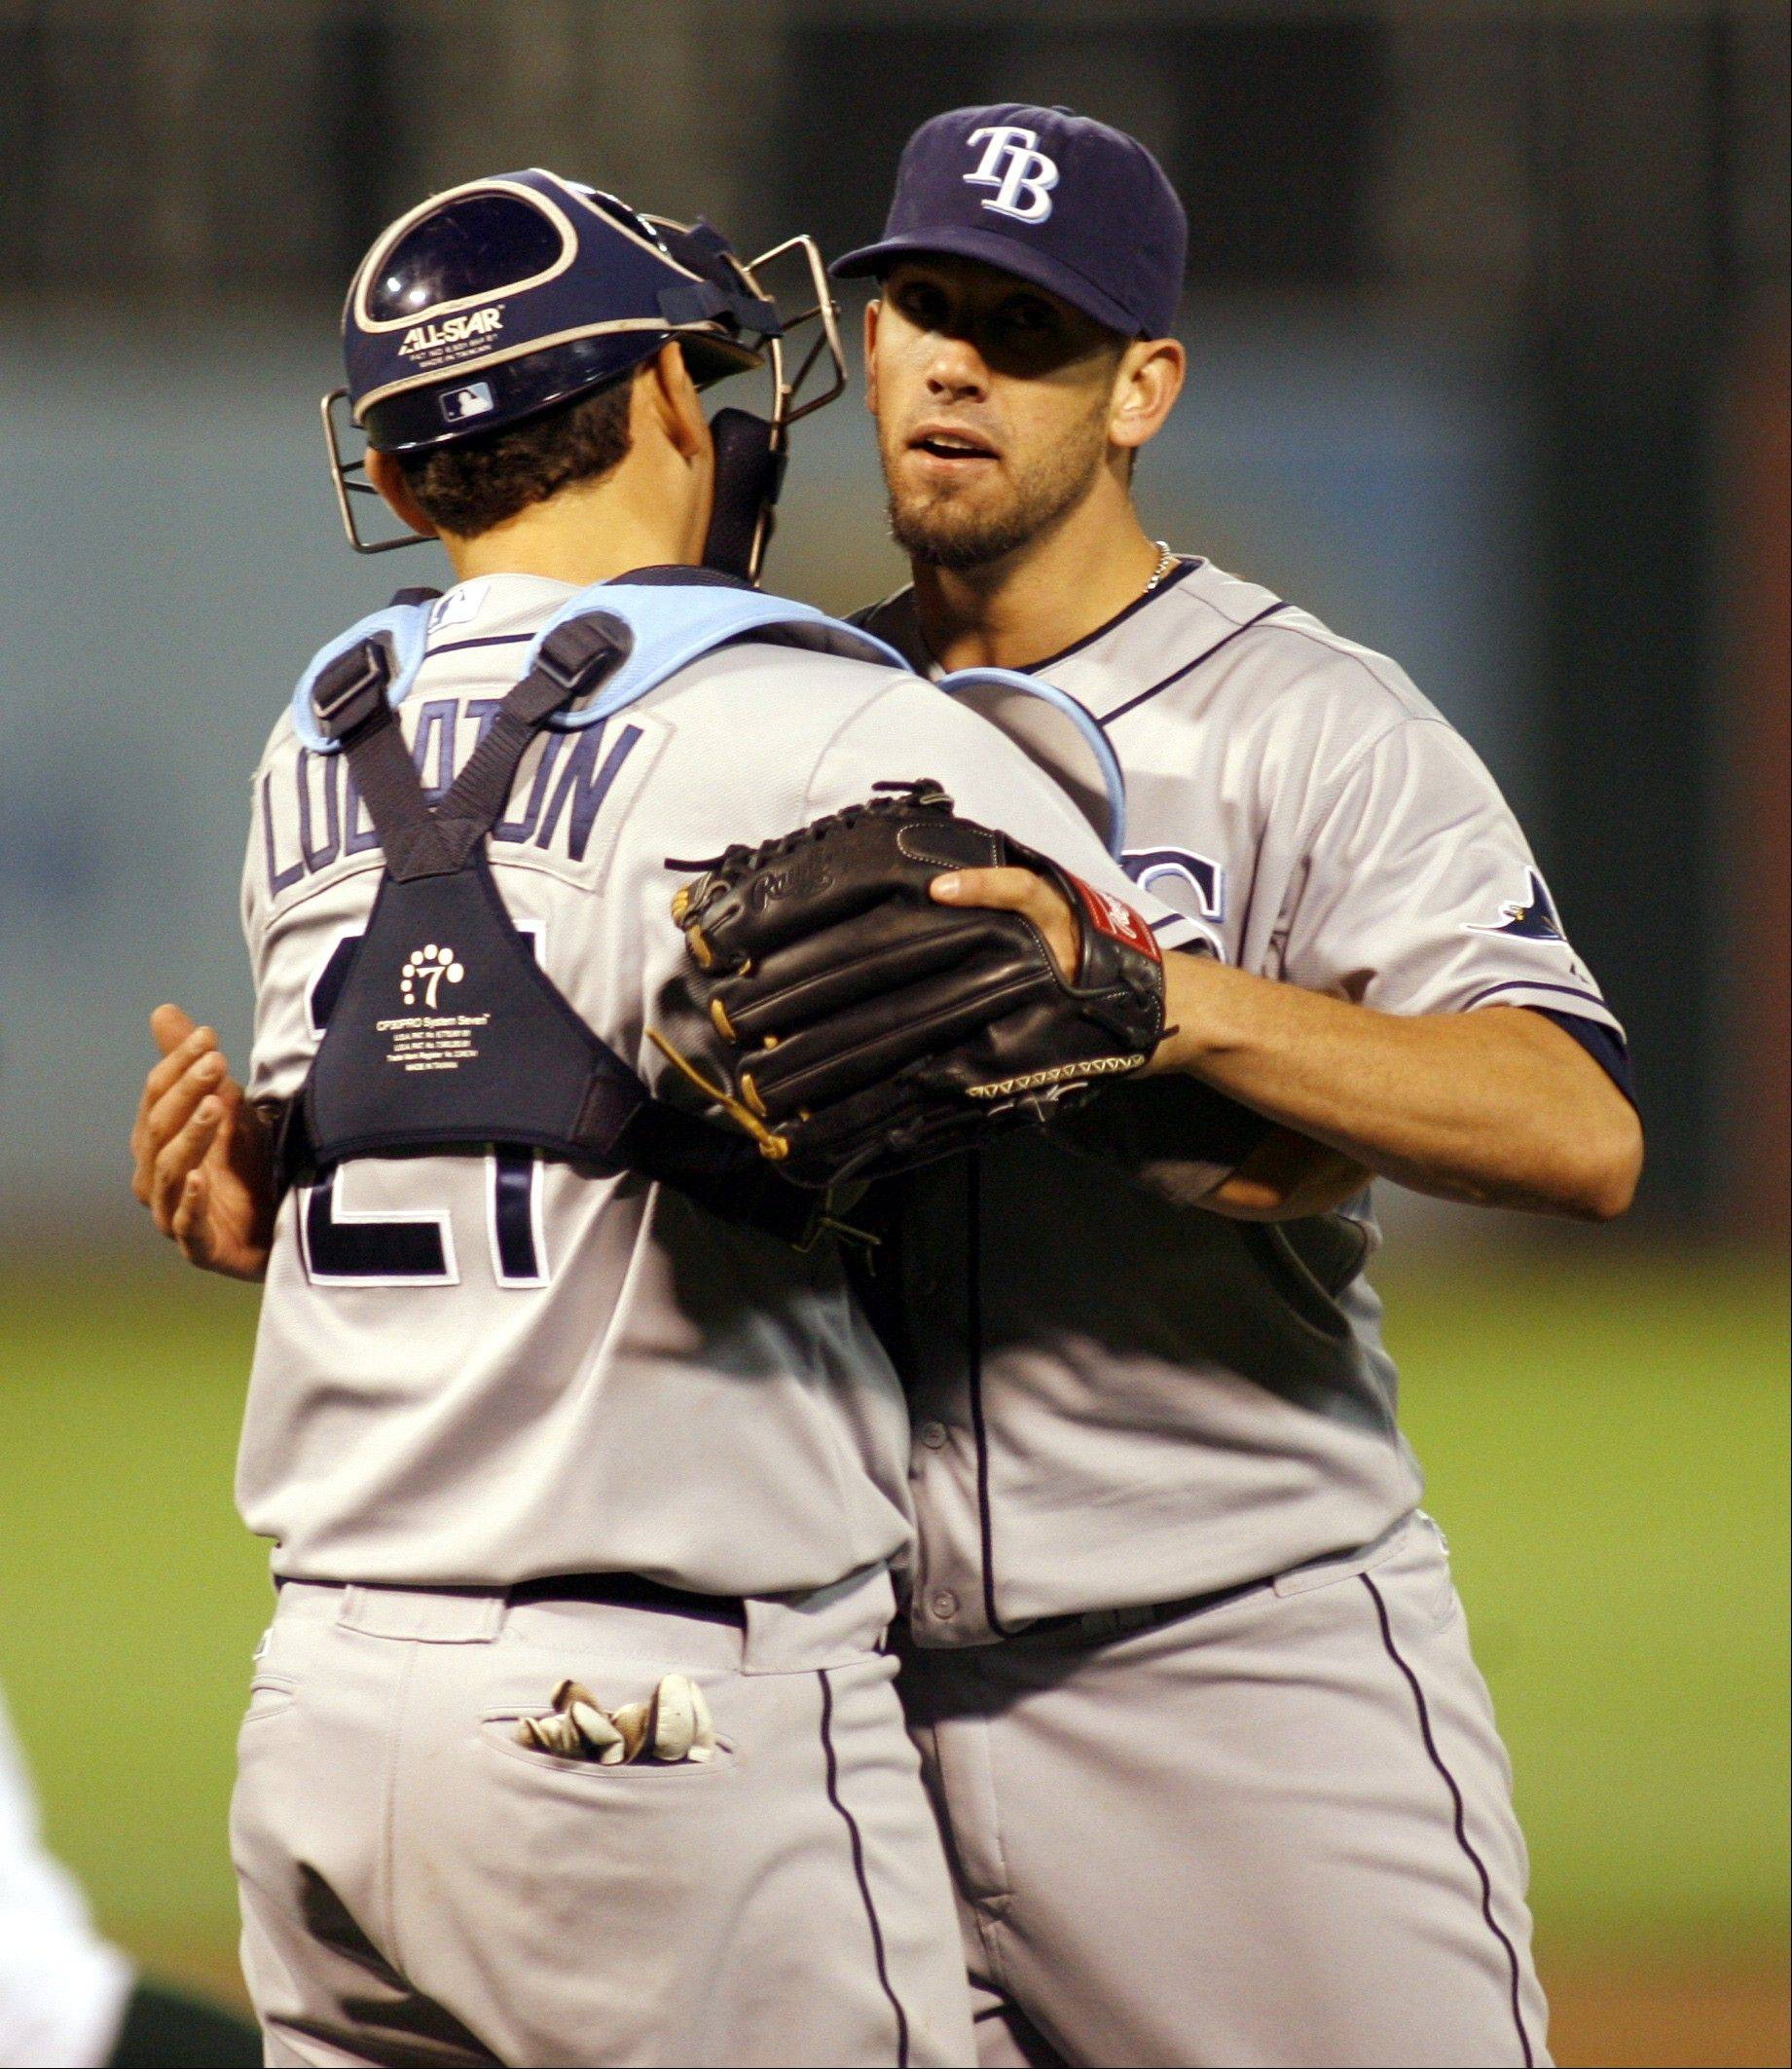 Tampa Bay Rays pitcher James Shields hugs catcher Jose Lobaton after pitching a three-hit shutout Tuesday night in Oakland.